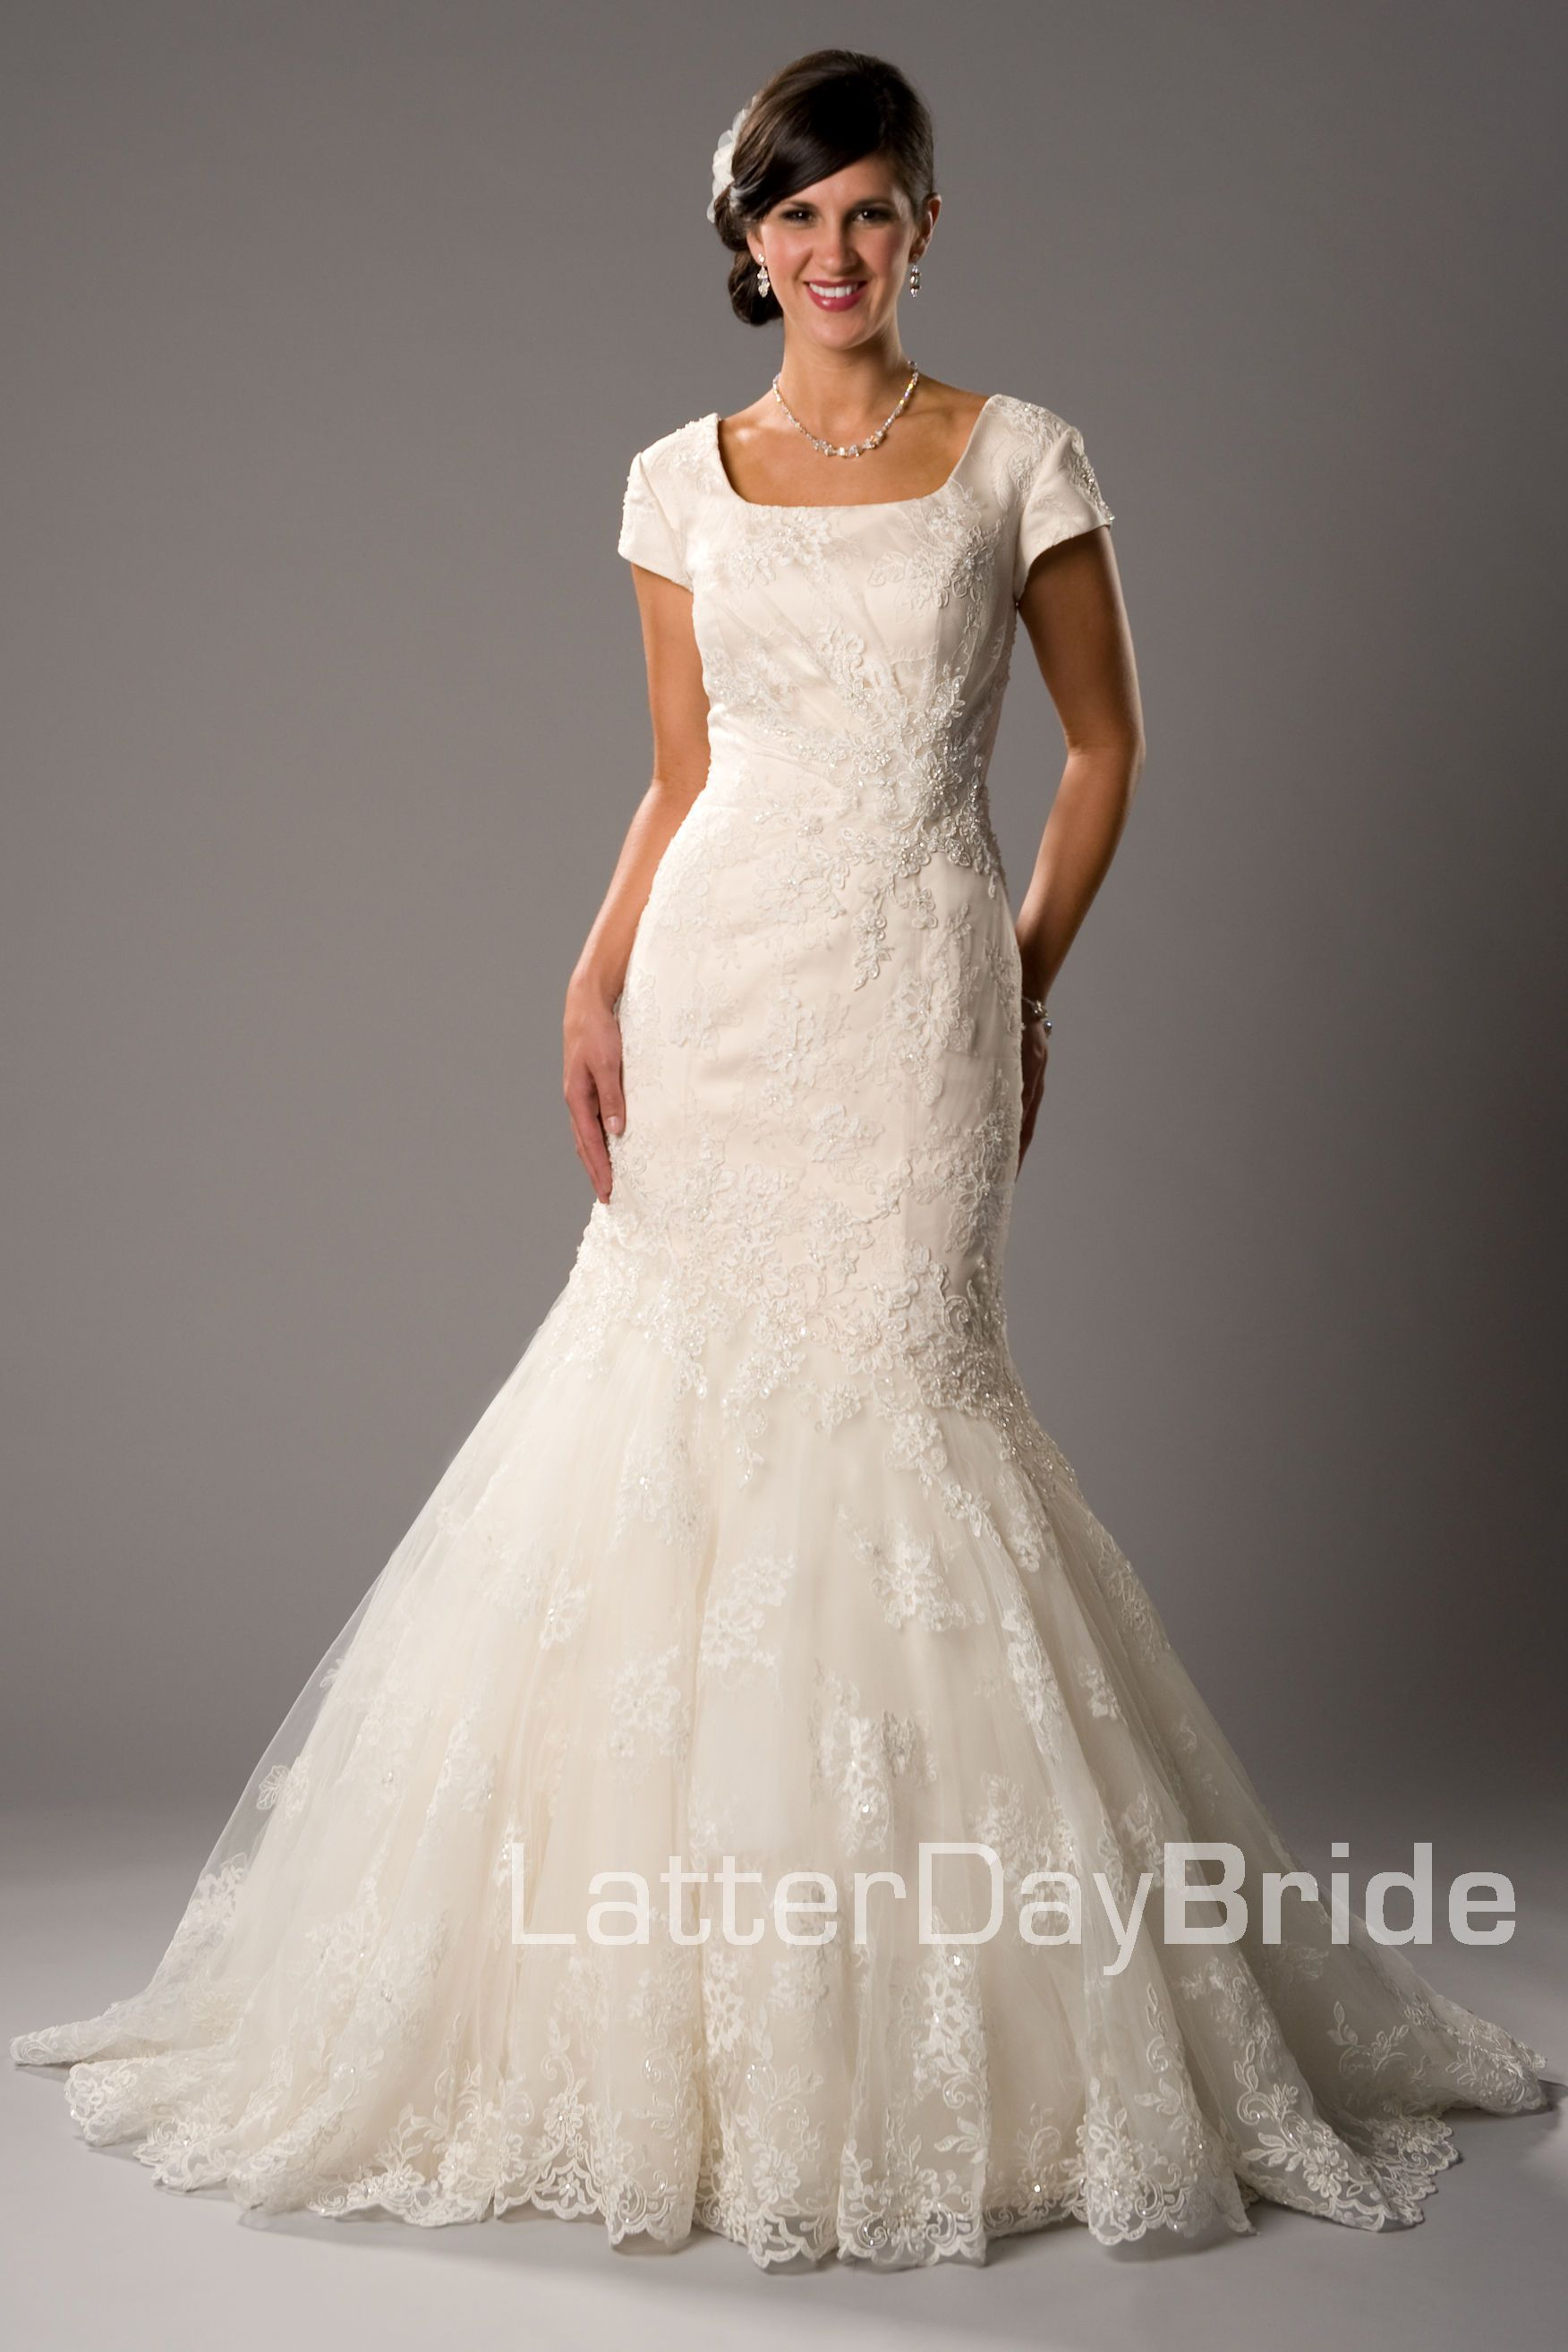 Modest Wedding Dress, Esperanza | LatterDayBride & Prom $1195.00 ...